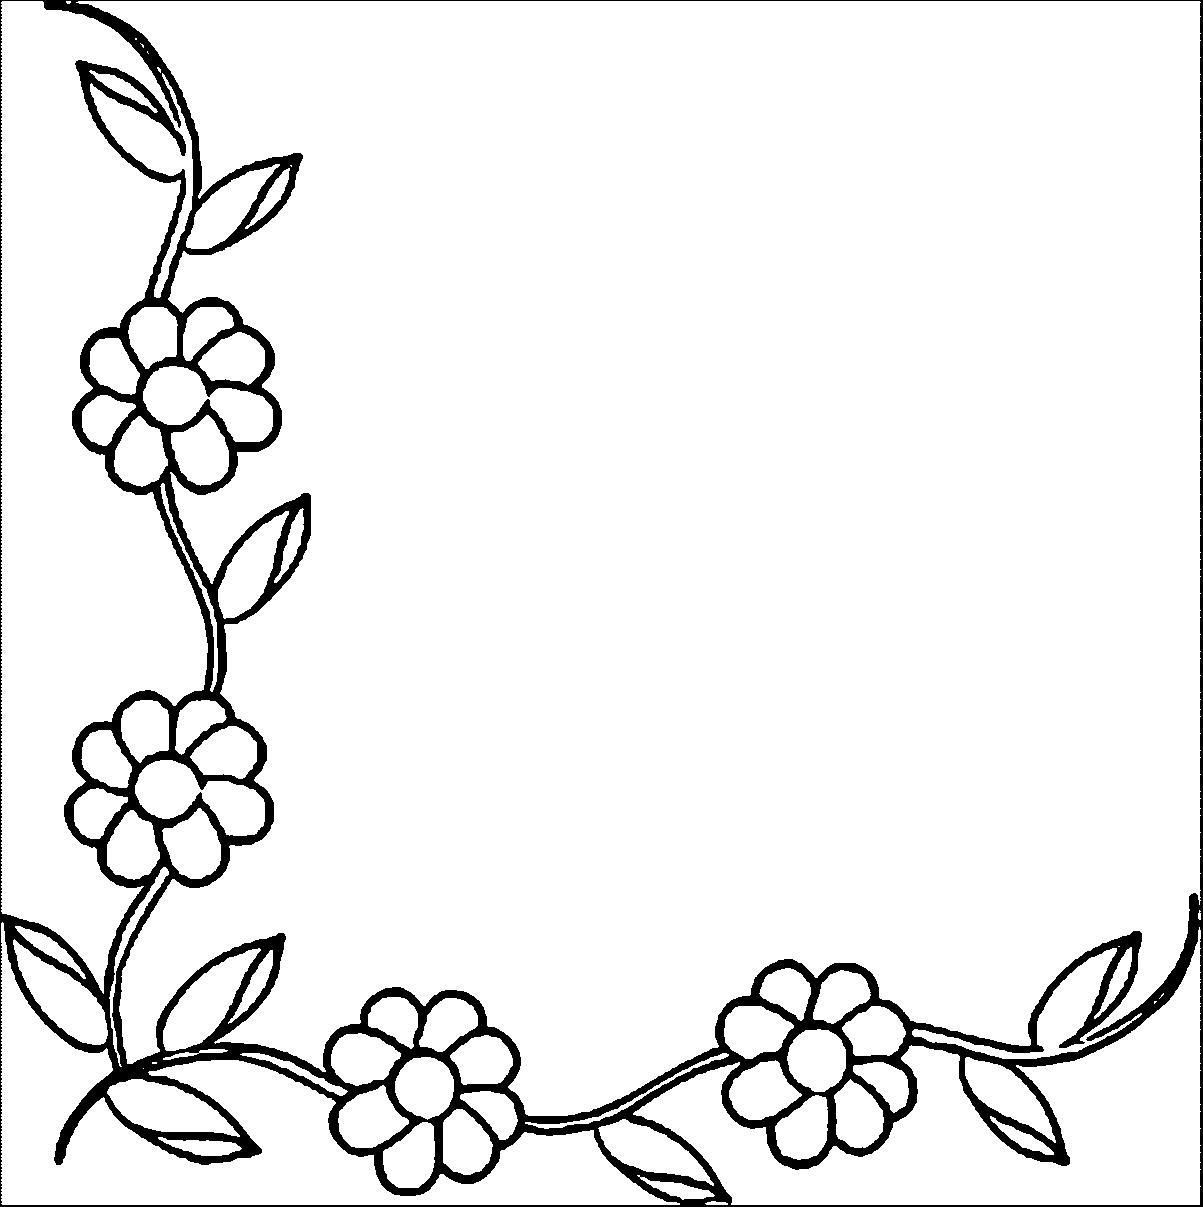 1203x1207 Coloring Pages Flower Borders Coloring Page Fun